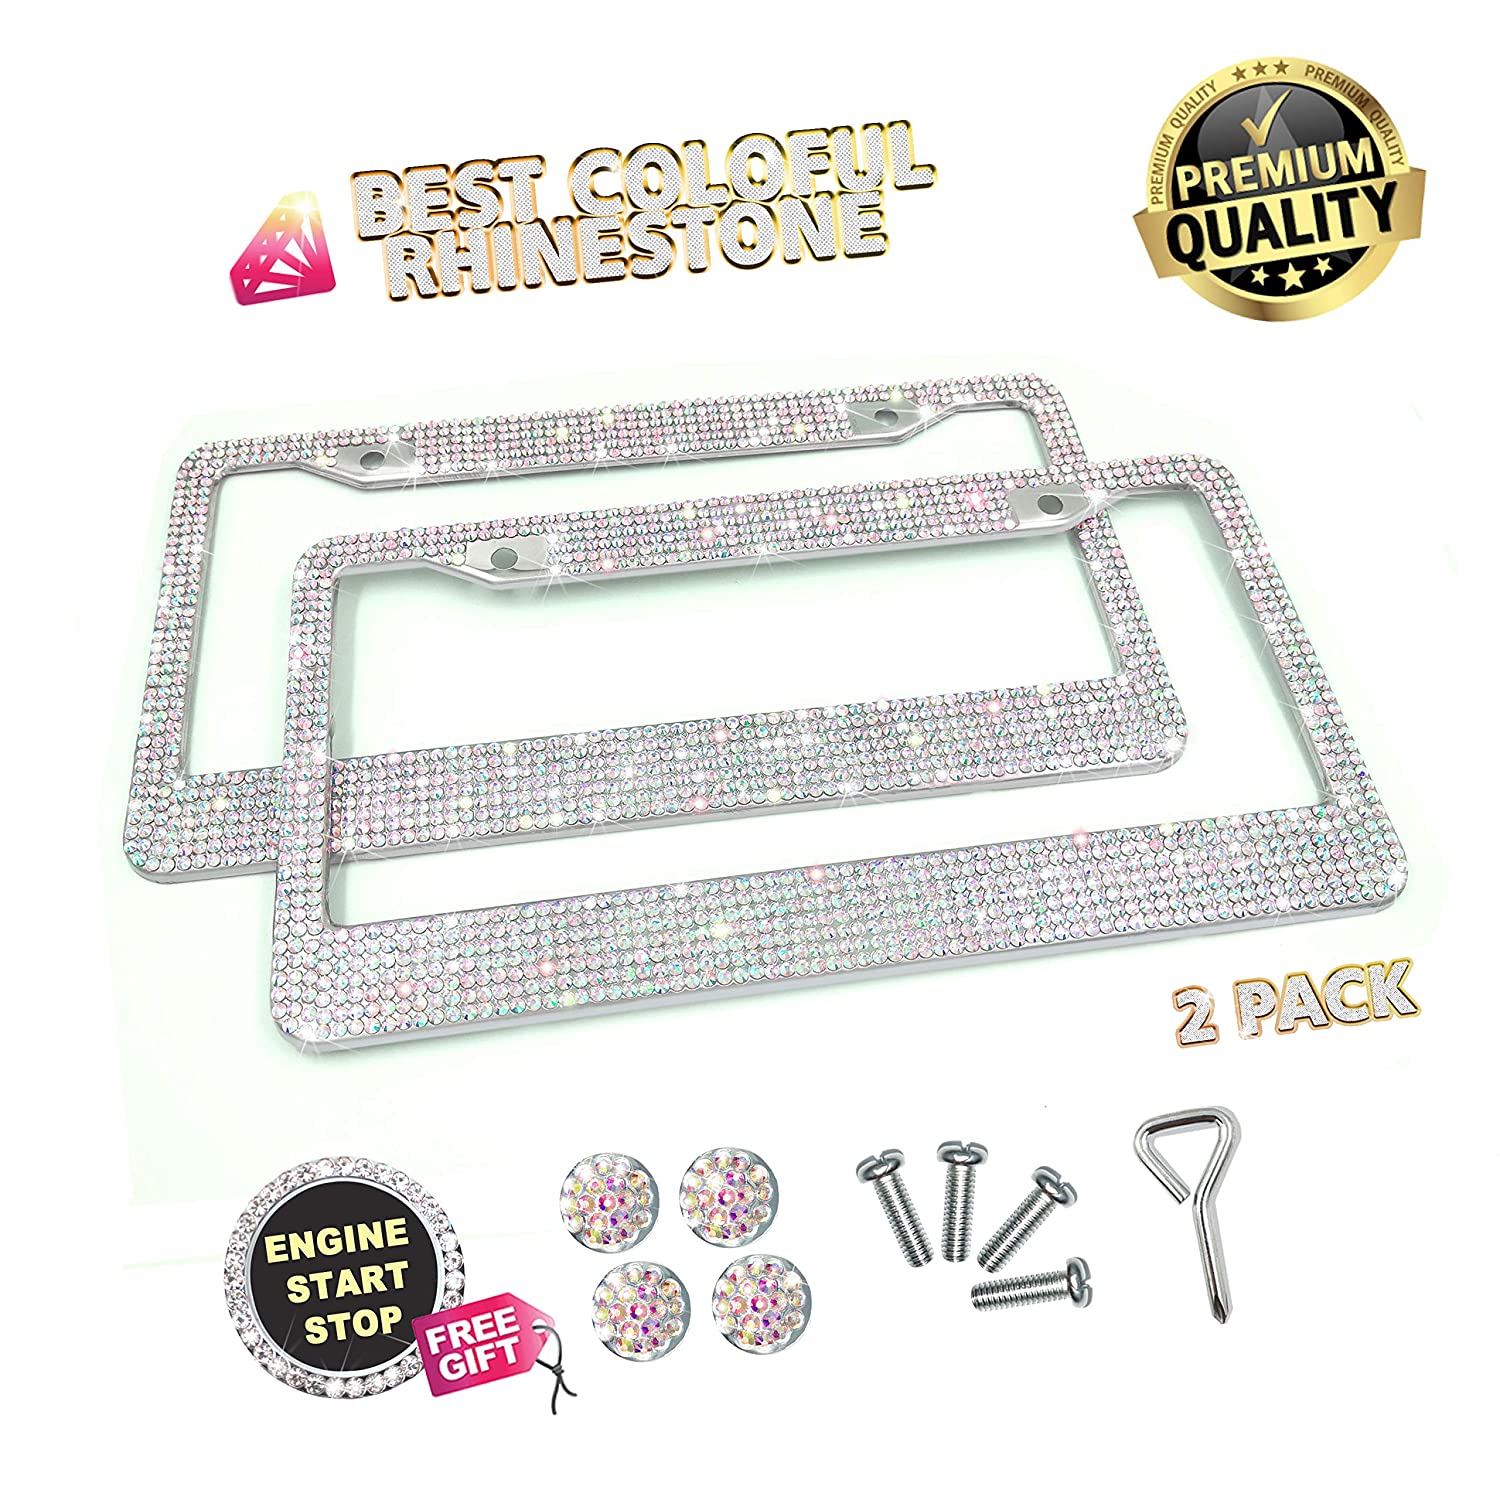 2 Pack Handcrafted Rhinestone Auto License Plate Cover with 7 Shiny Crystal Rows,Over 1050 pcs Finest 14 Facets SS16 Clear Bling Rhinestone Crystal Lord Eagle License Plate Frame